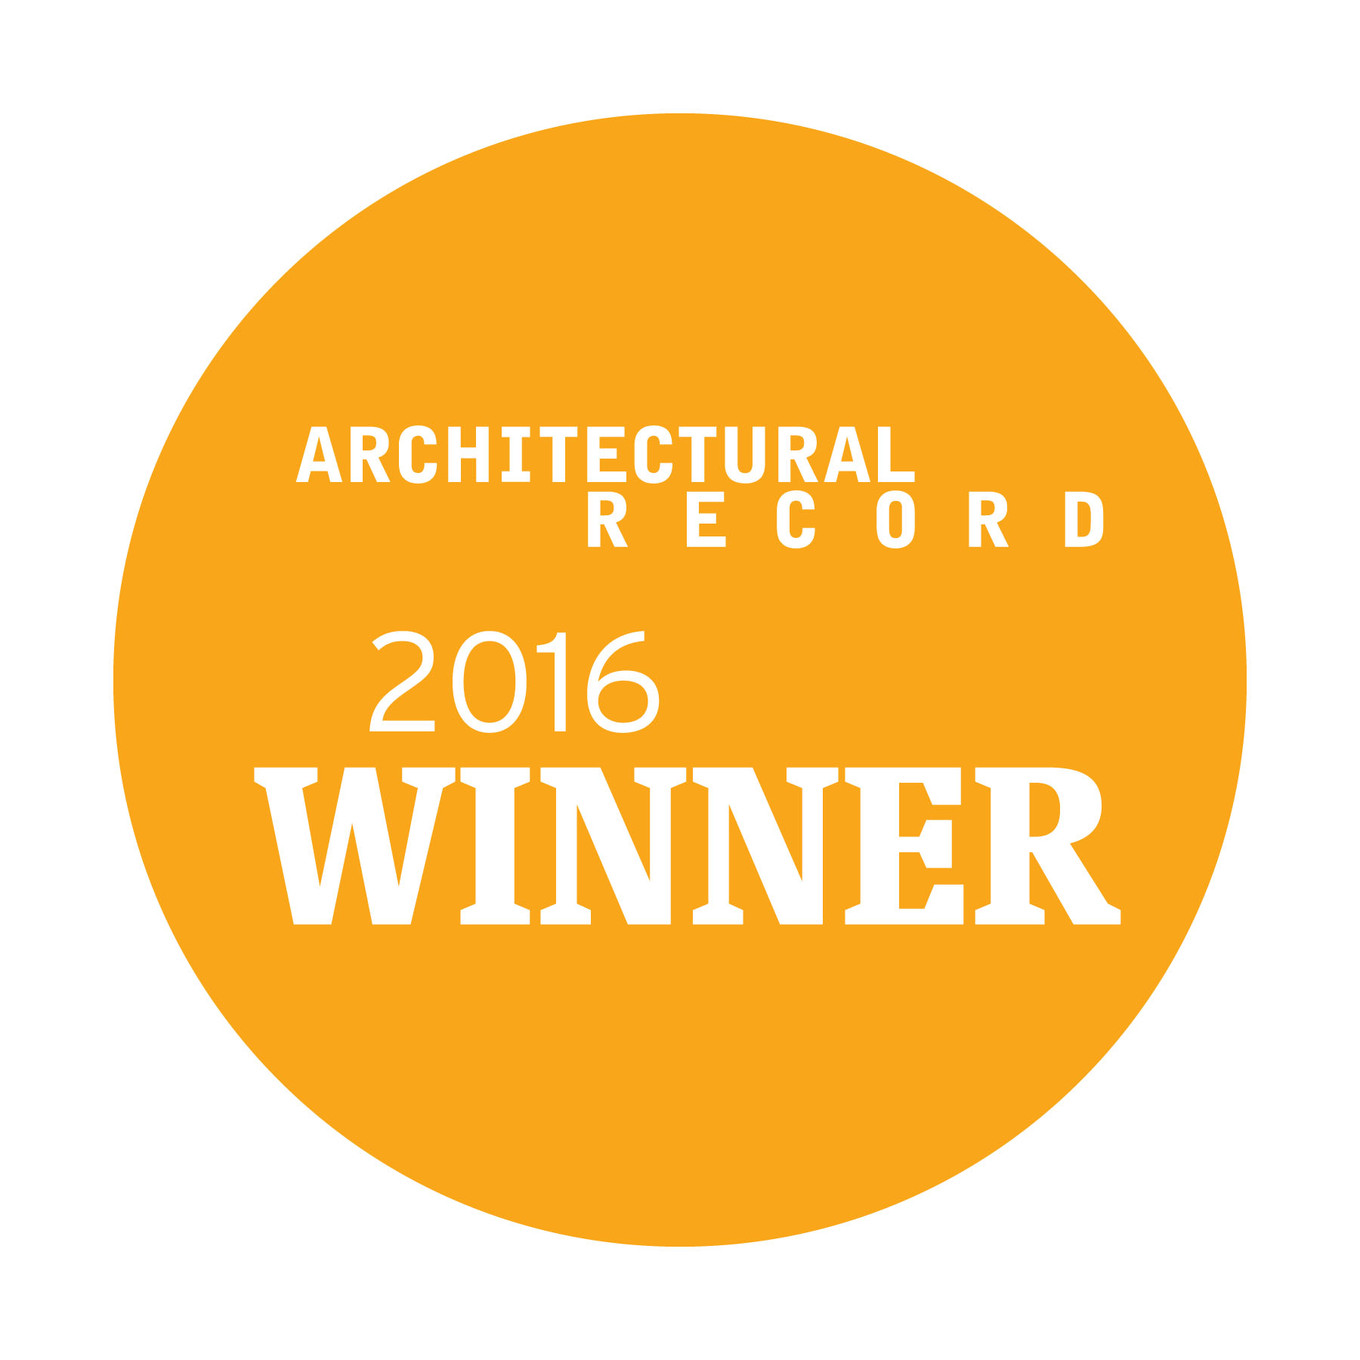 Sensitile Wins TWO Architectural Record Product Awards from Architectural Records 2016